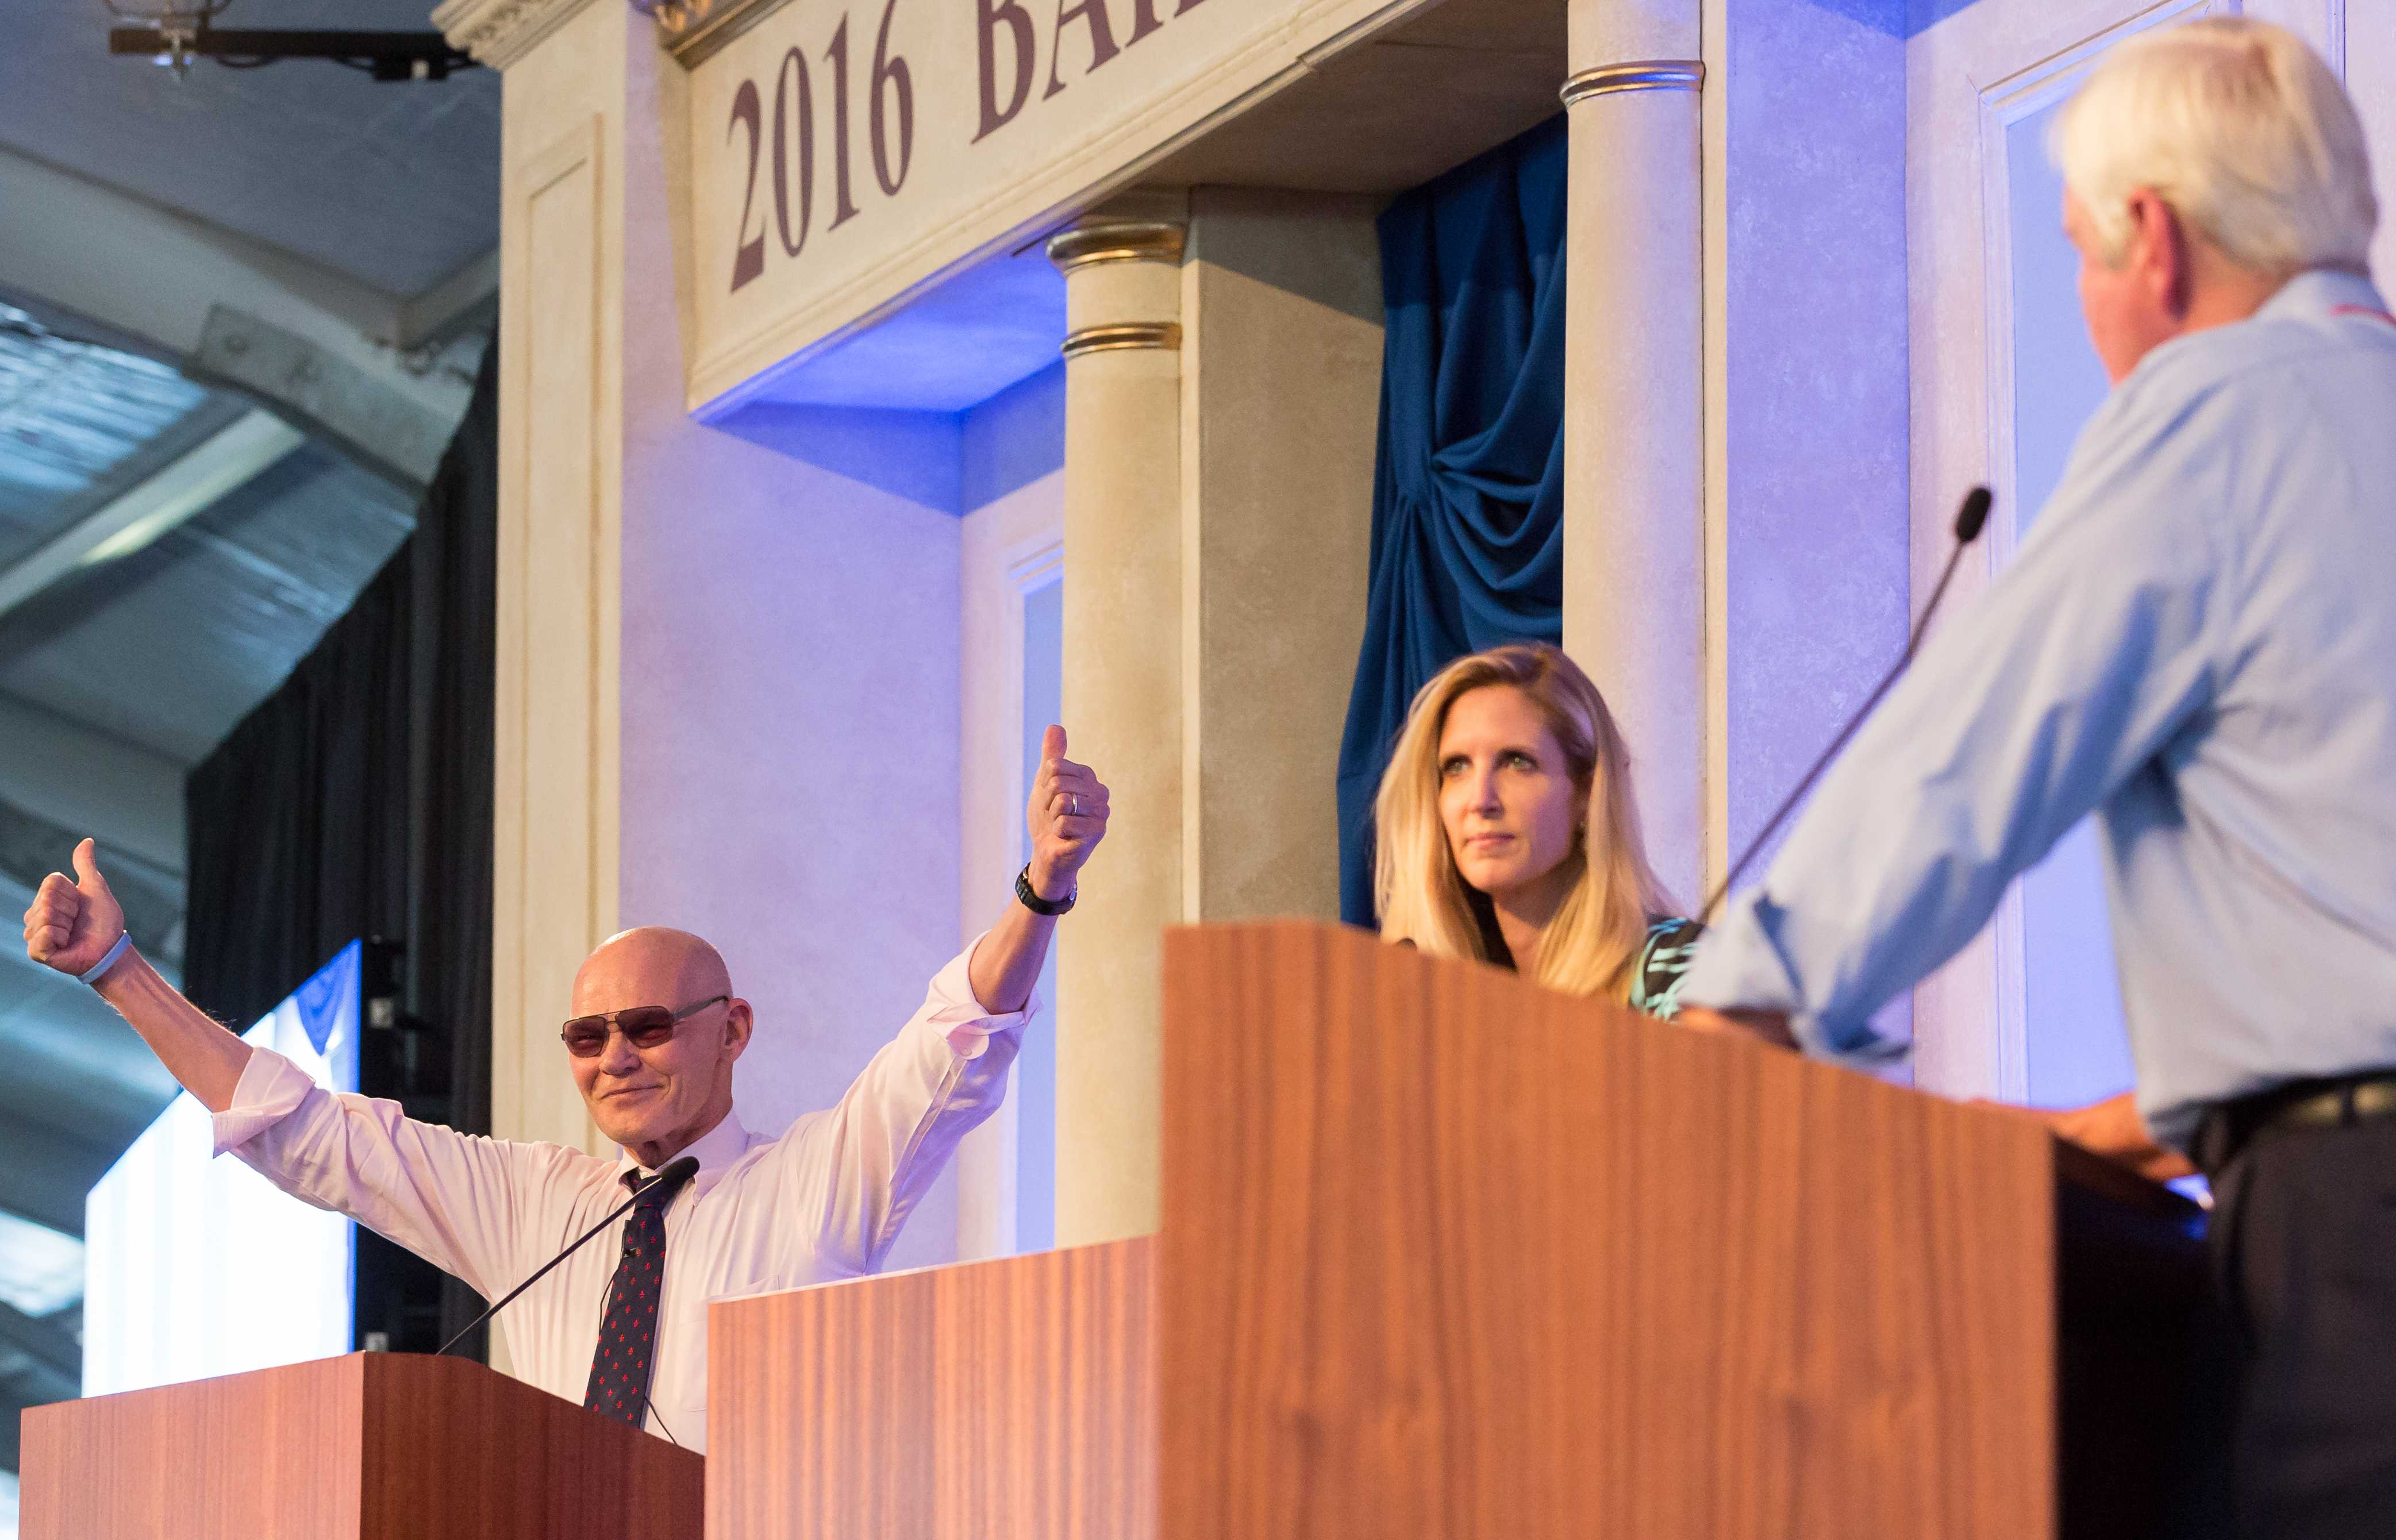 Coulter and Carville face off in heated debate